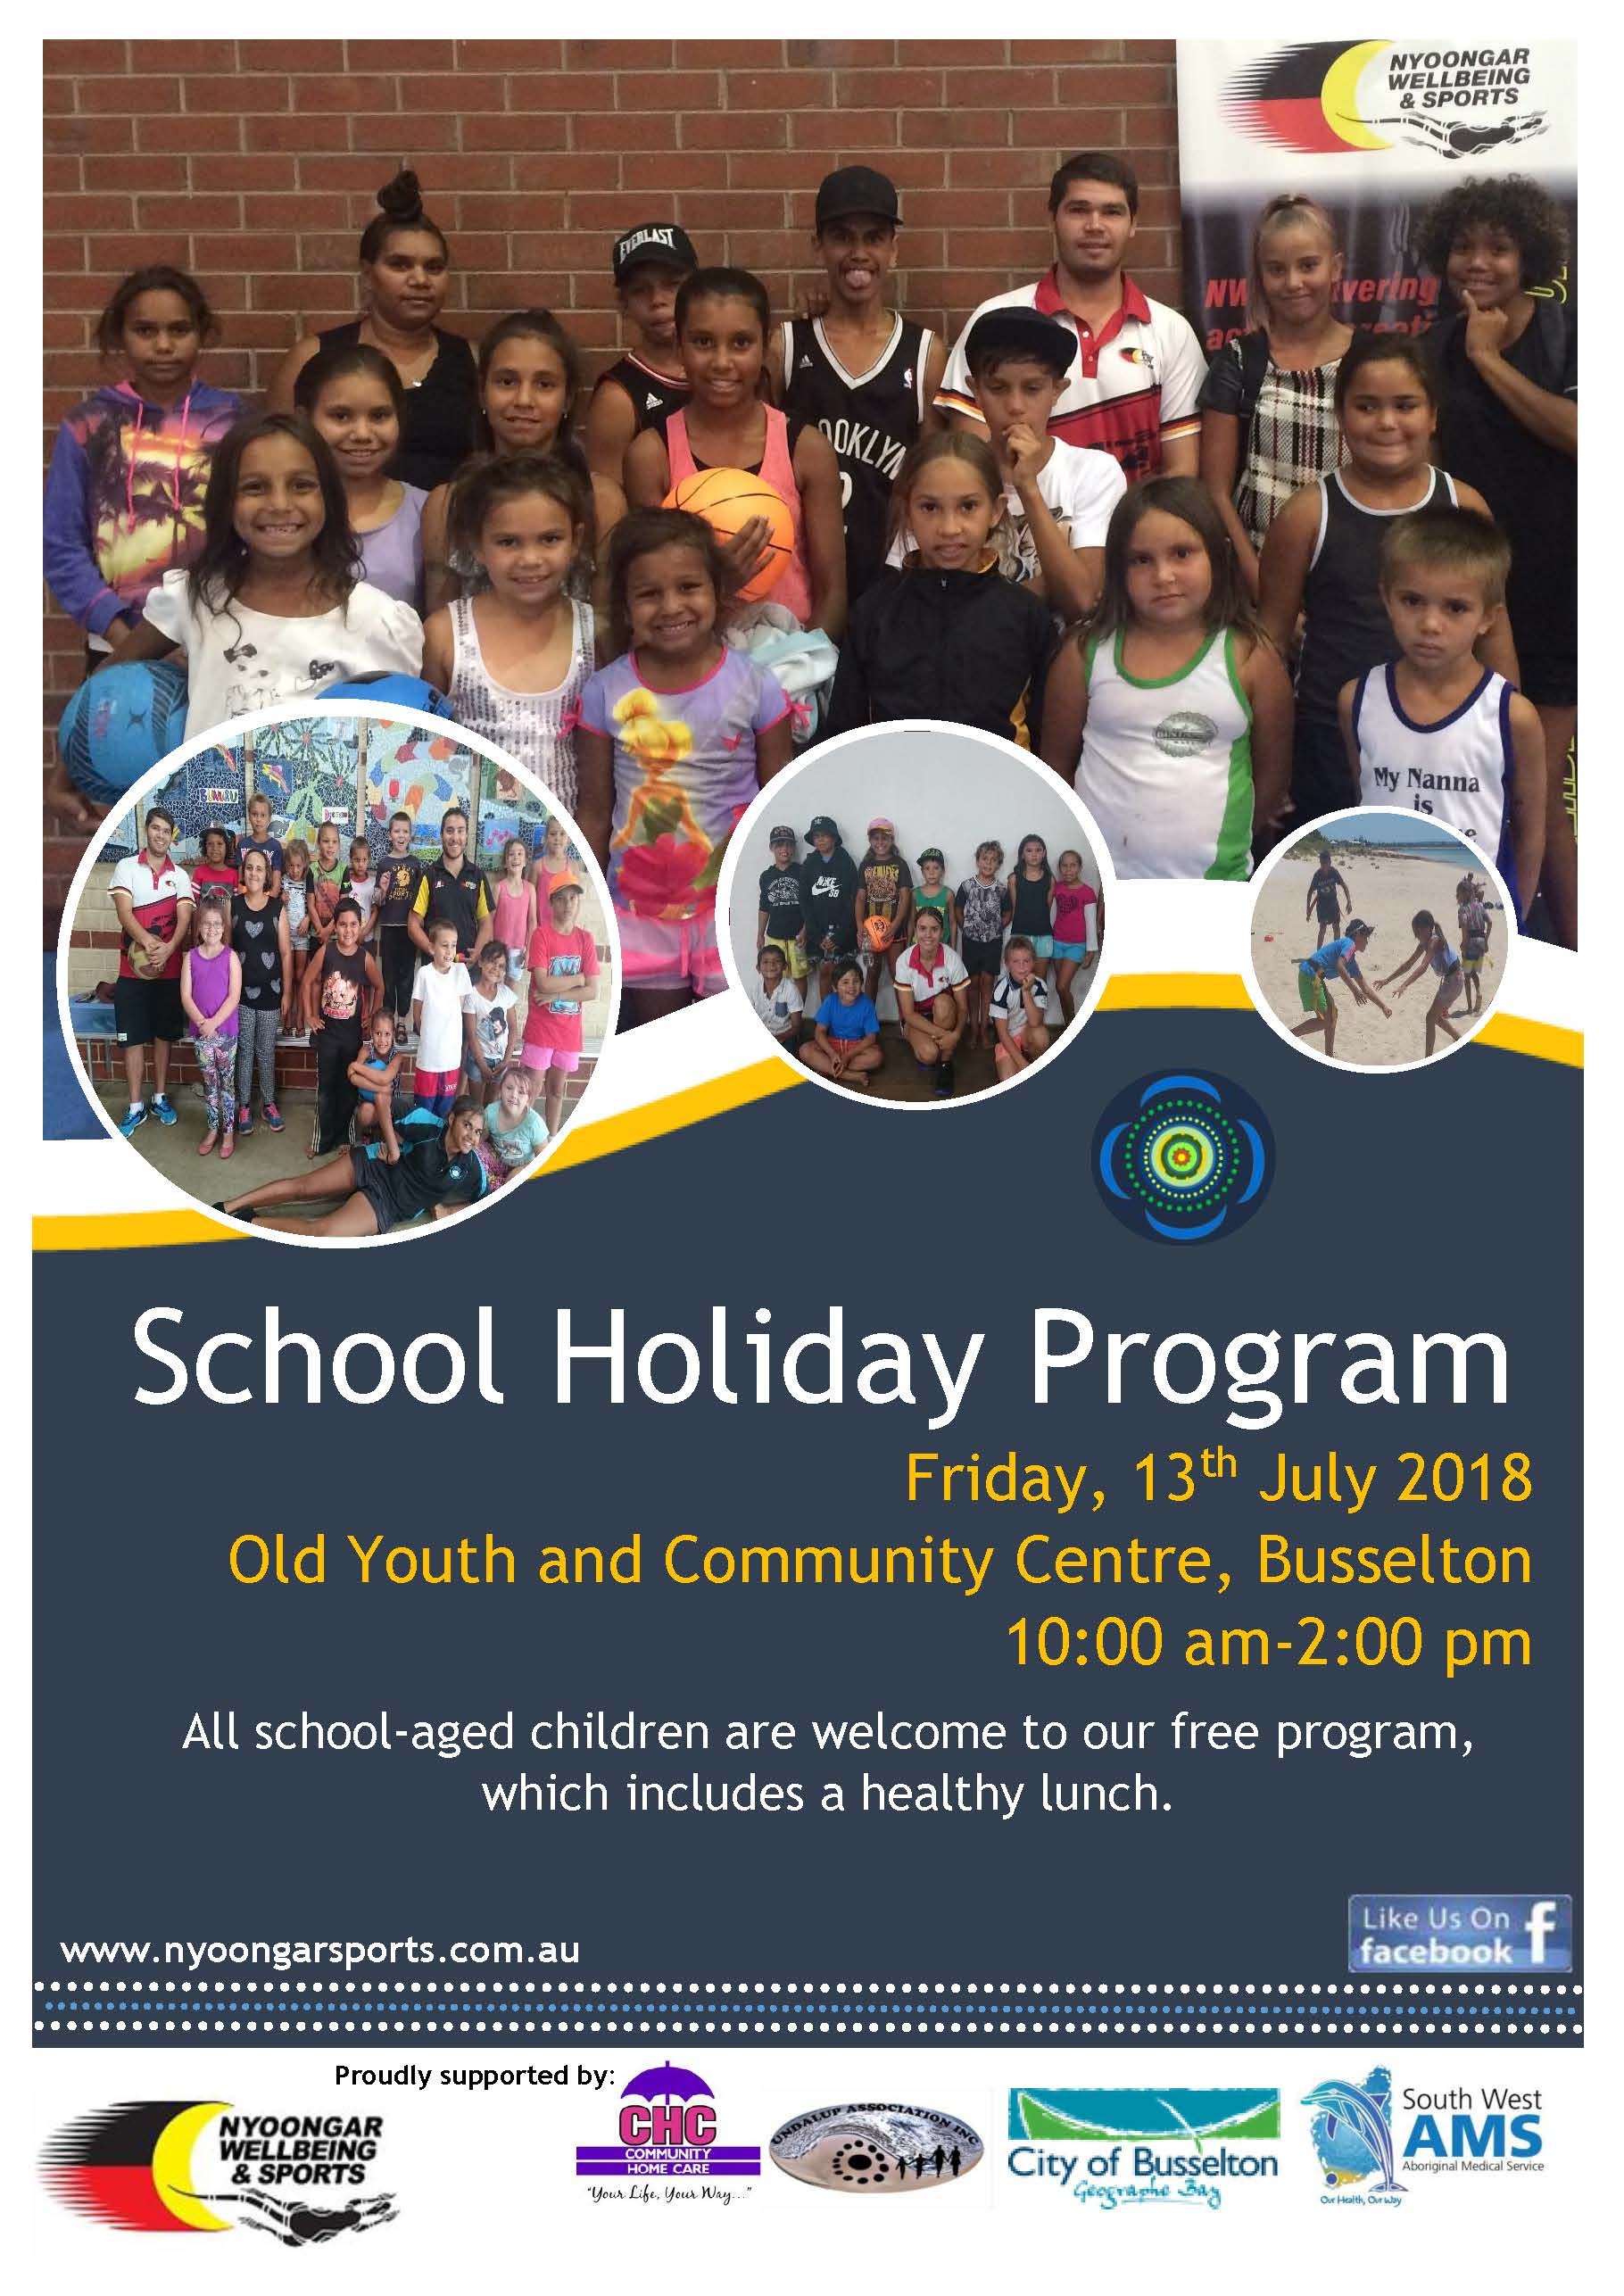 SHP-South-West-flyer-Busselton-13th-July-2018